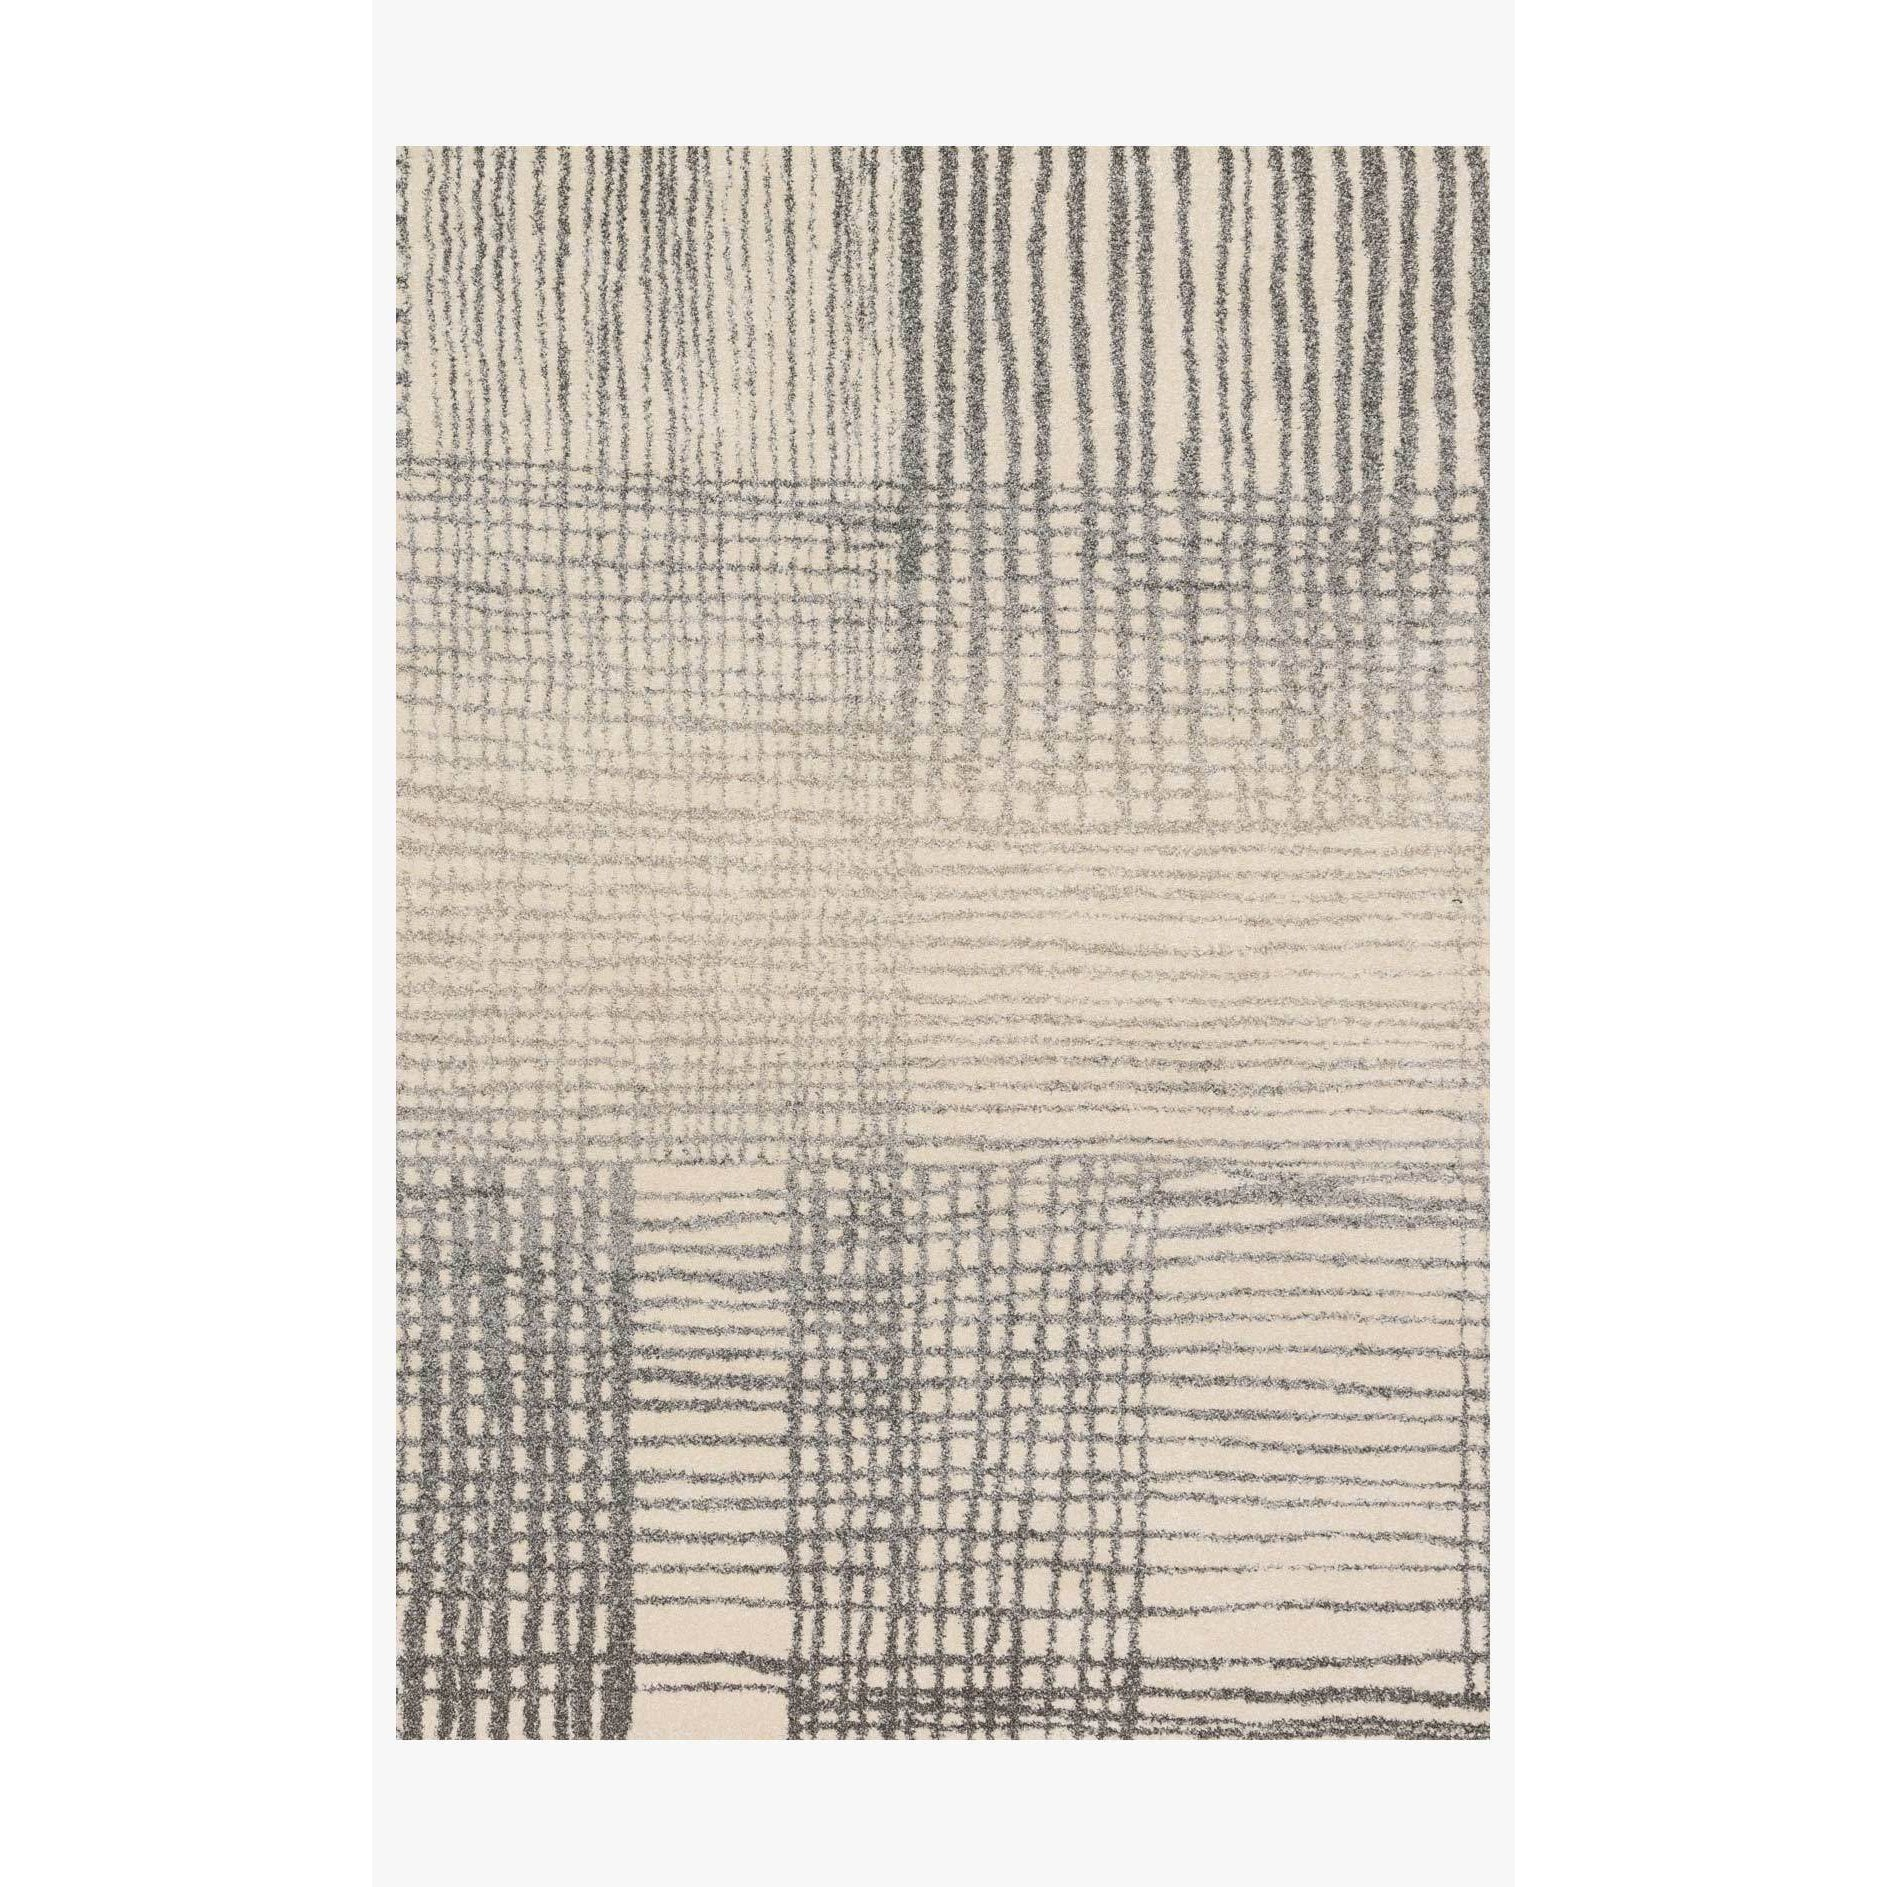 Emory Rug by Loloi Rugs - EB-05 - Ivory / Grey